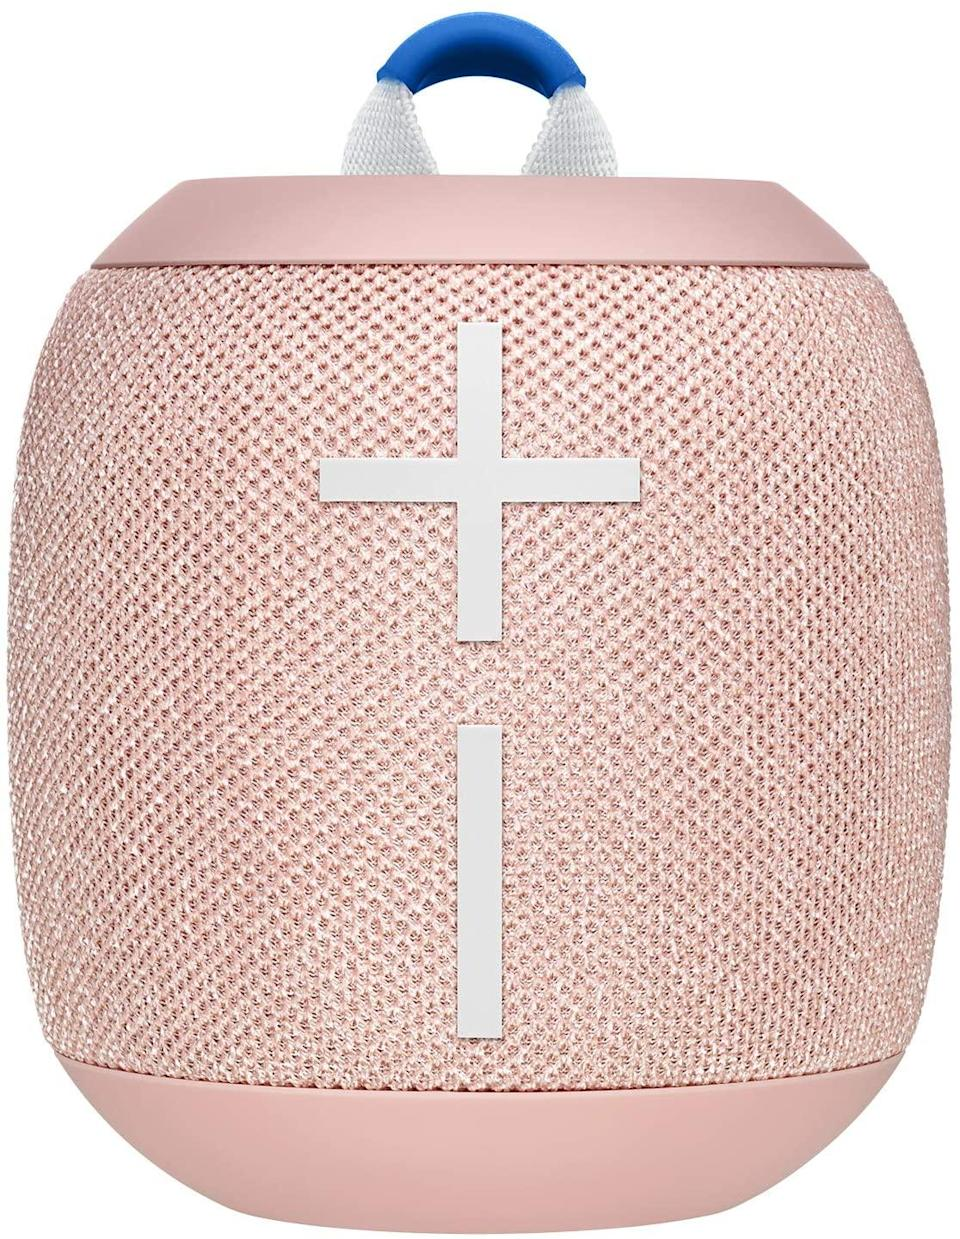 "<h3>Sporty Bluetooth Speaker</h3> <br>Let's not overlook the importance of music to add a home-like ambiance to your day trip. There are countless Bluetooth speakers on the market, but we like the compact and colorful design of Ultimate Ears' Wonderboom. (Good luck deciding among red, blue, gray, or this irresistible millennial pink.) It has a ""boost"" feature for amplifying sound clarity outdoors, 13-hour battery life, and a nifty little hook so you can hang it any old place. Oh, and did we mention it's waterproof — and it <em>floats</em>?<br><br><strong>Ultimate Ears</strong> Wonderboom 2, $, available at <a href=""https://www.amazon.com/dp/B07NFP6D7Q/ref=twister_B07ZPQ2KCS"" rel=""nofollow noopener"" target=""_blank"" data-ylk=""slk:Amazon"" class=""link rapid-noclick-resp"">Amazon</a><br>"